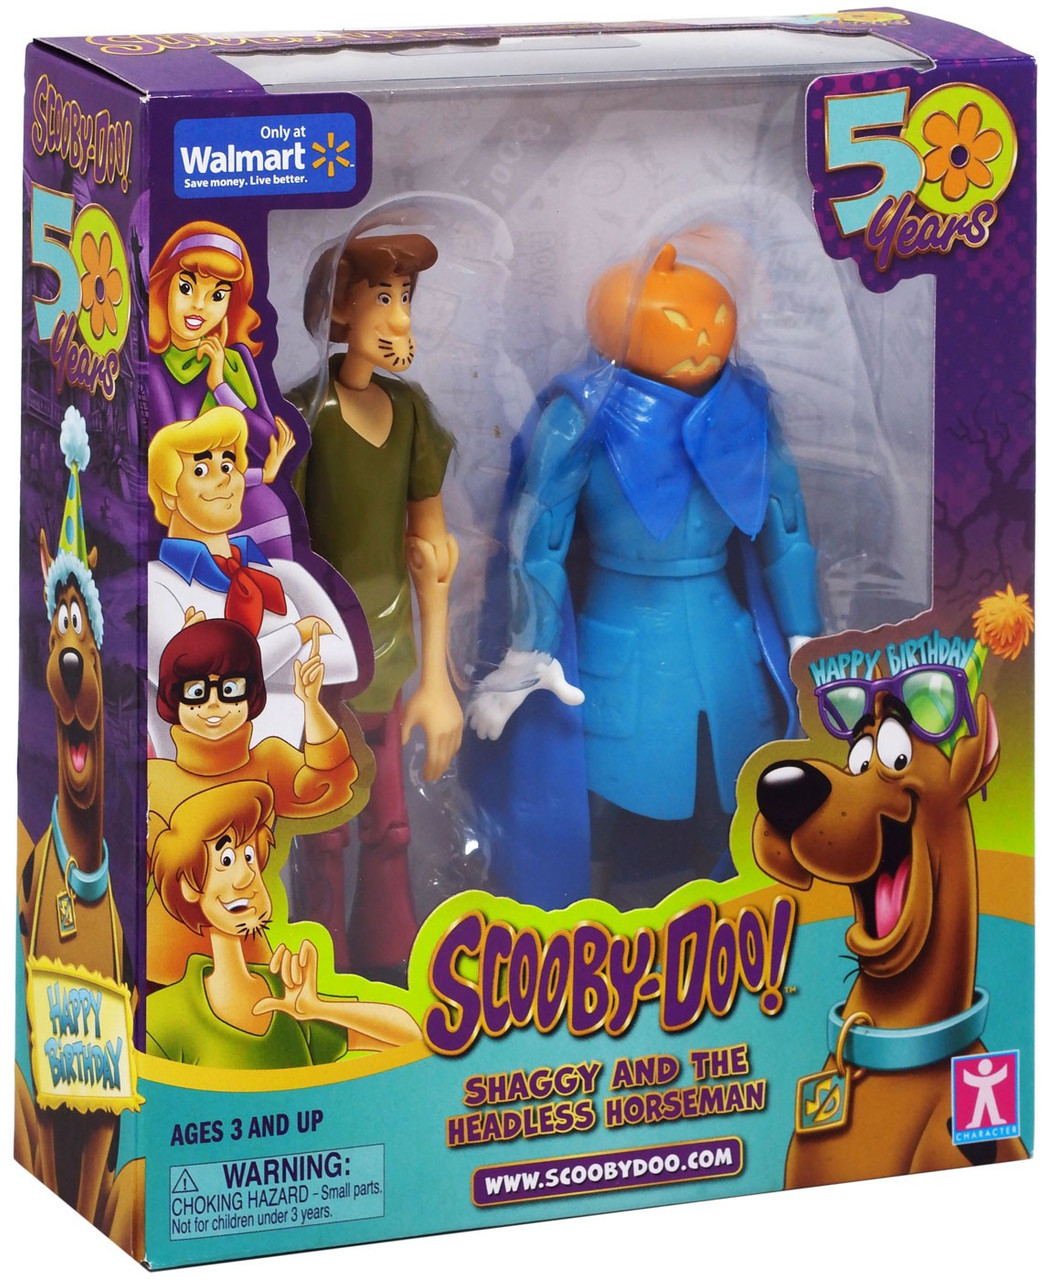 Neon Green Shirt Goes With Shaggy Roblox Scooby Doo 50 Years Shaggy The Headless Horseman Exclusive Action Figure 2 Pack Zoink Toywiz